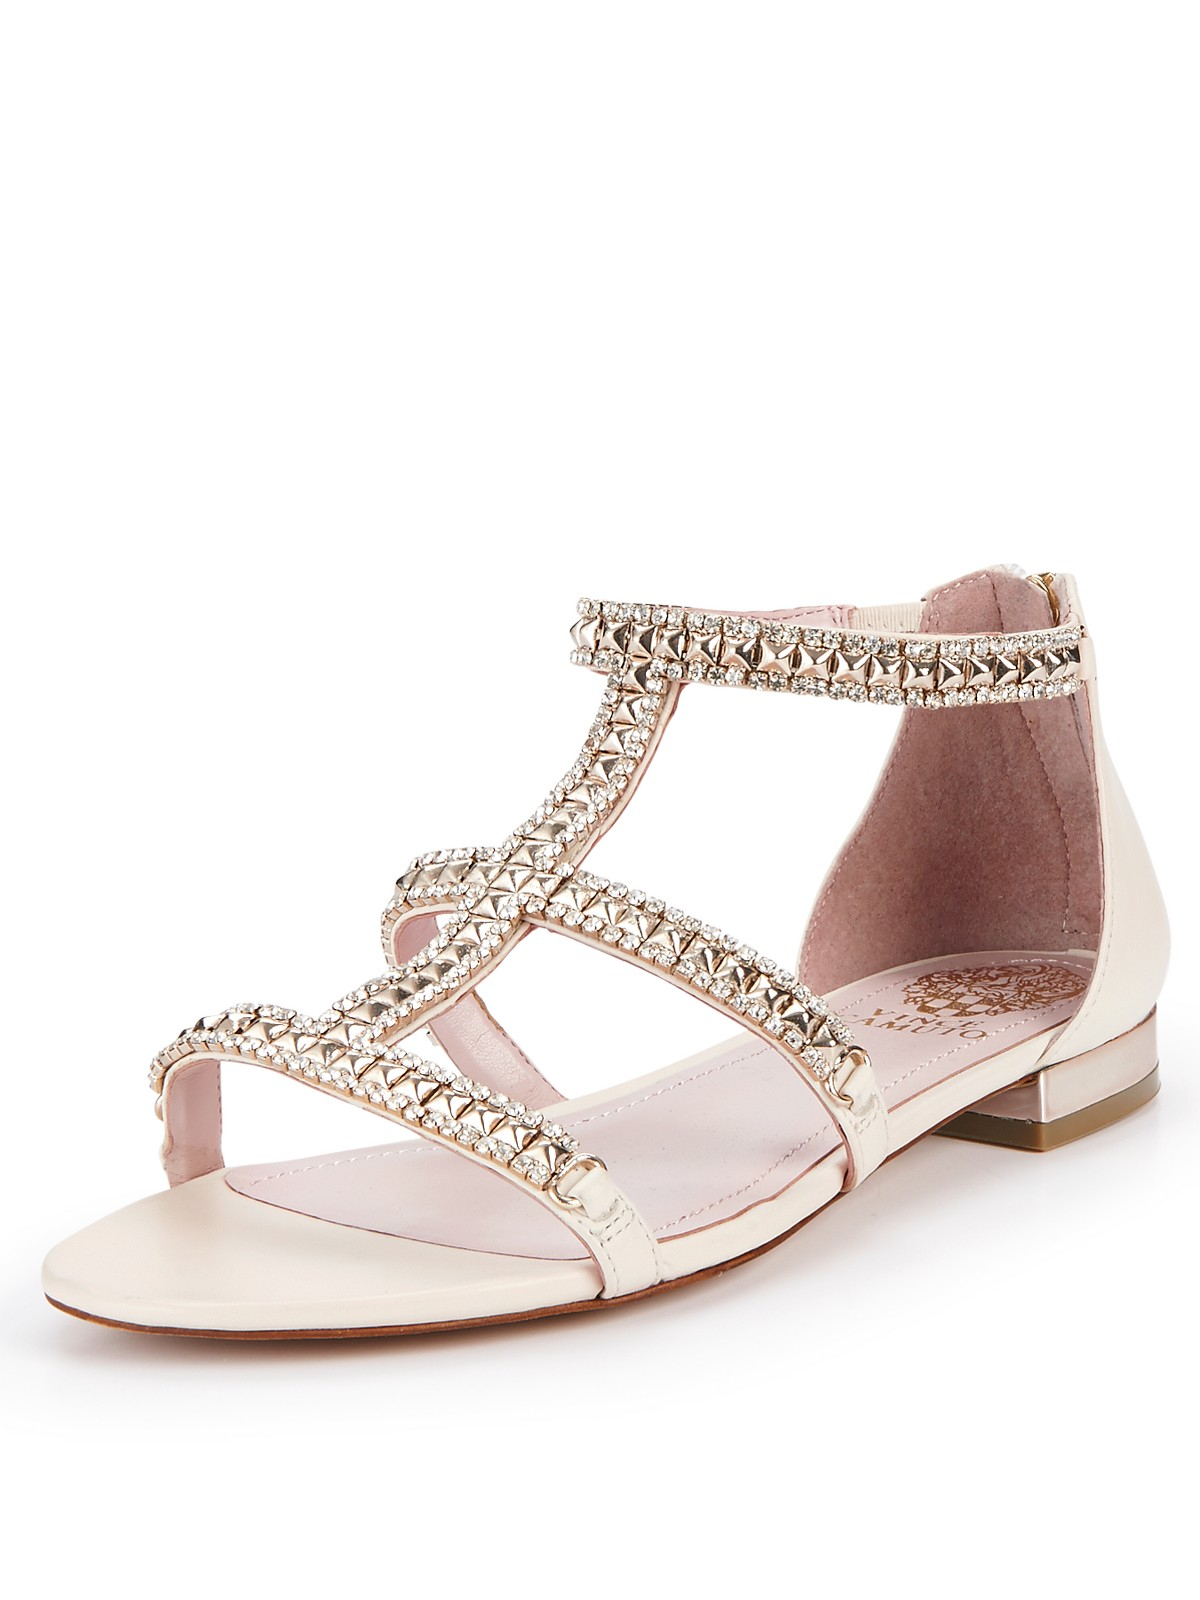 Vince Camuto Vince Camuto Hilinda Cous Flat Sandals In